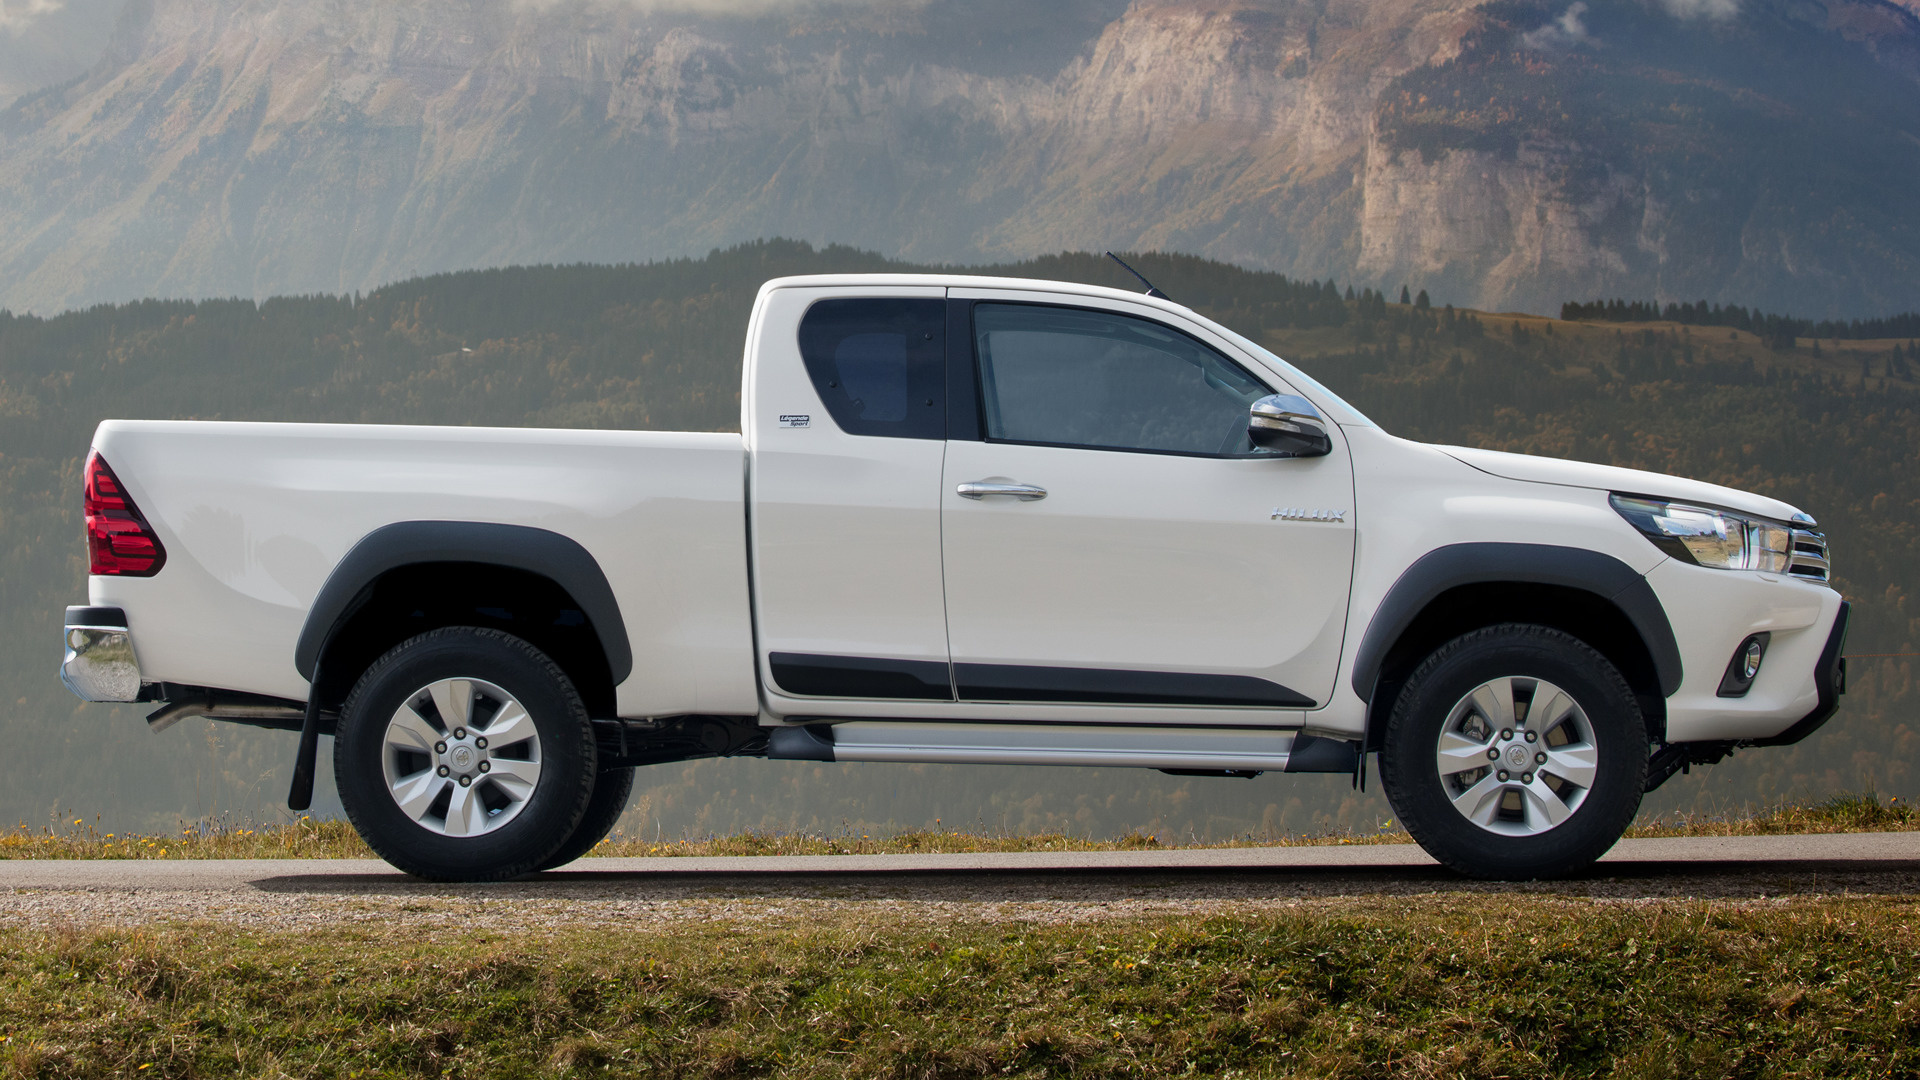 Toyota Hilux Xtra Cab Legende Sport (2018) Wallpapers and ...